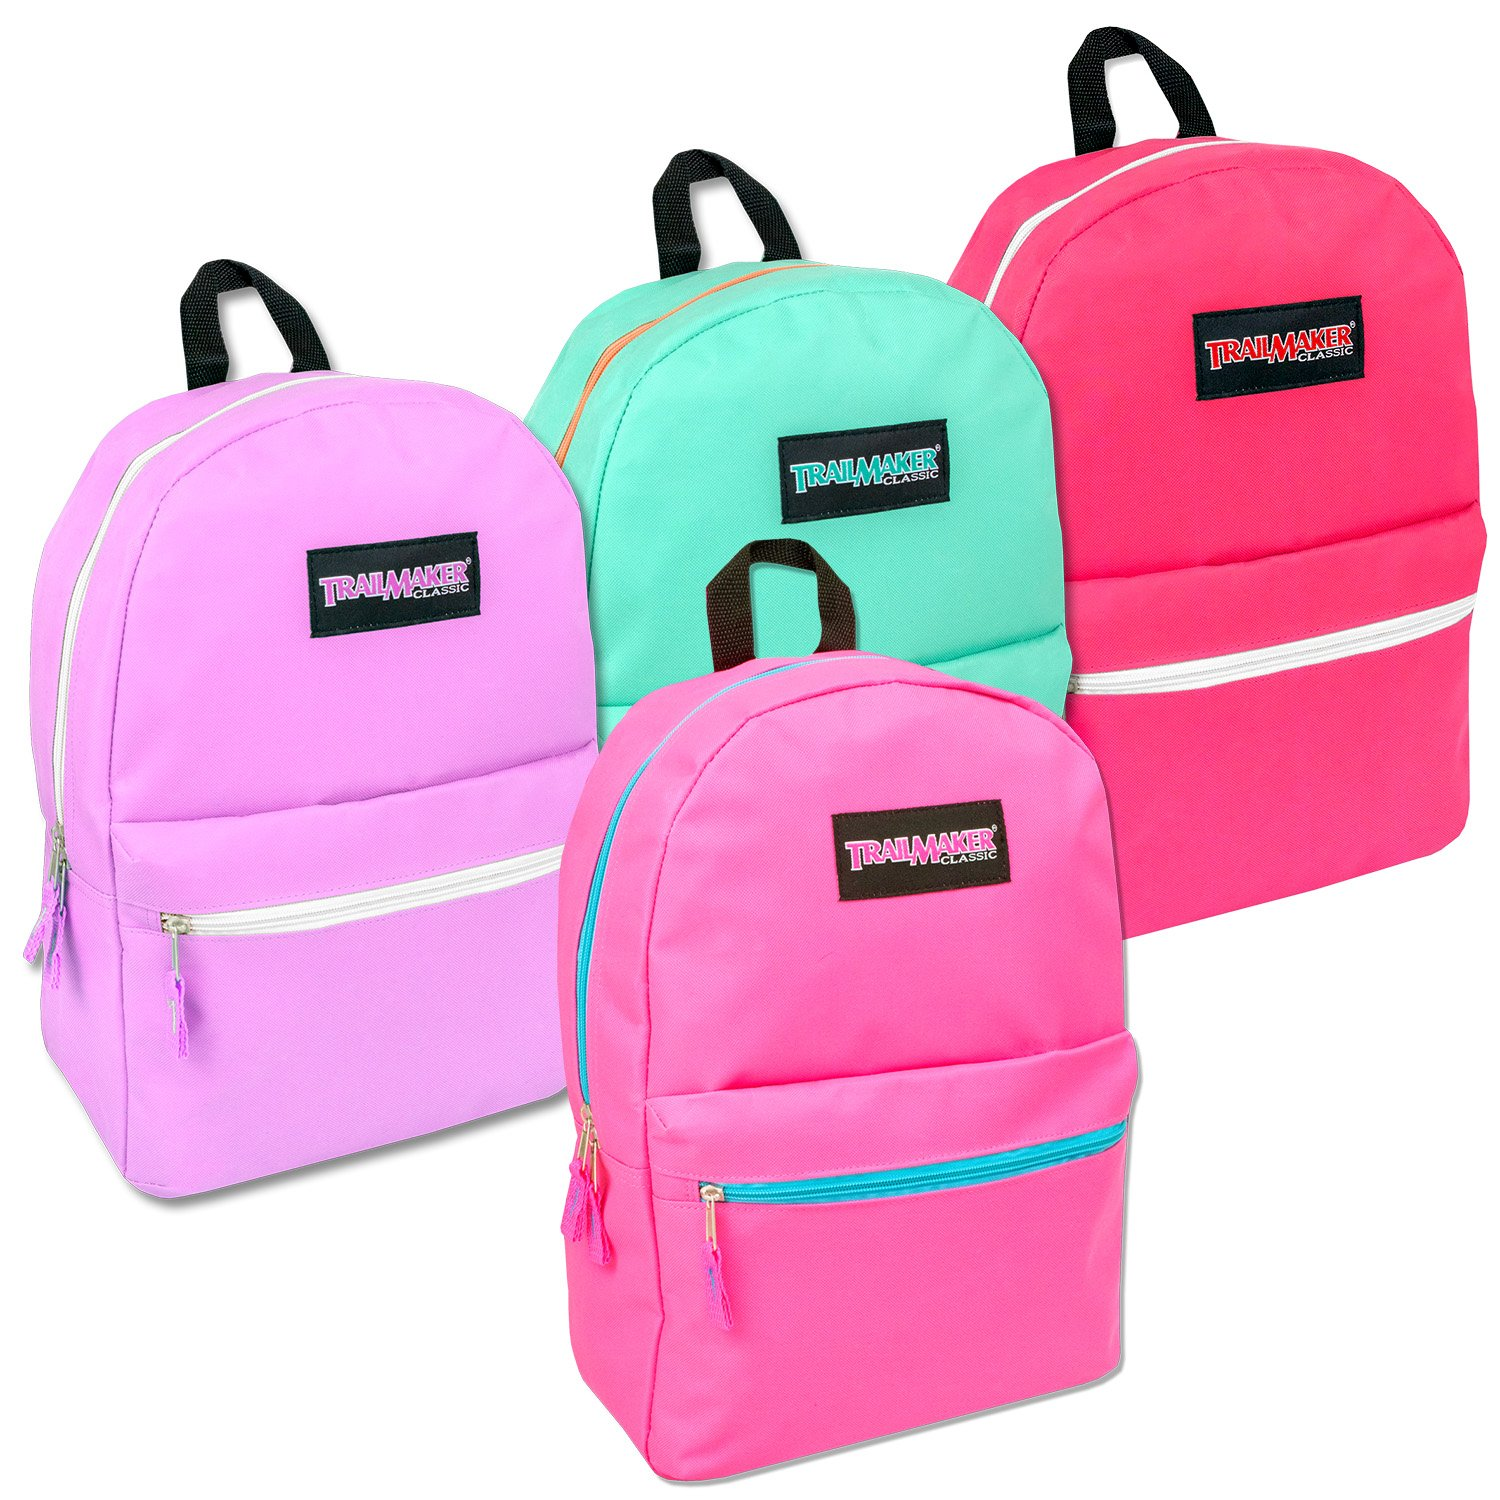 Wholesale Trailmaker Deluxe 17 Inch Backpack - Girls Case Pack 24